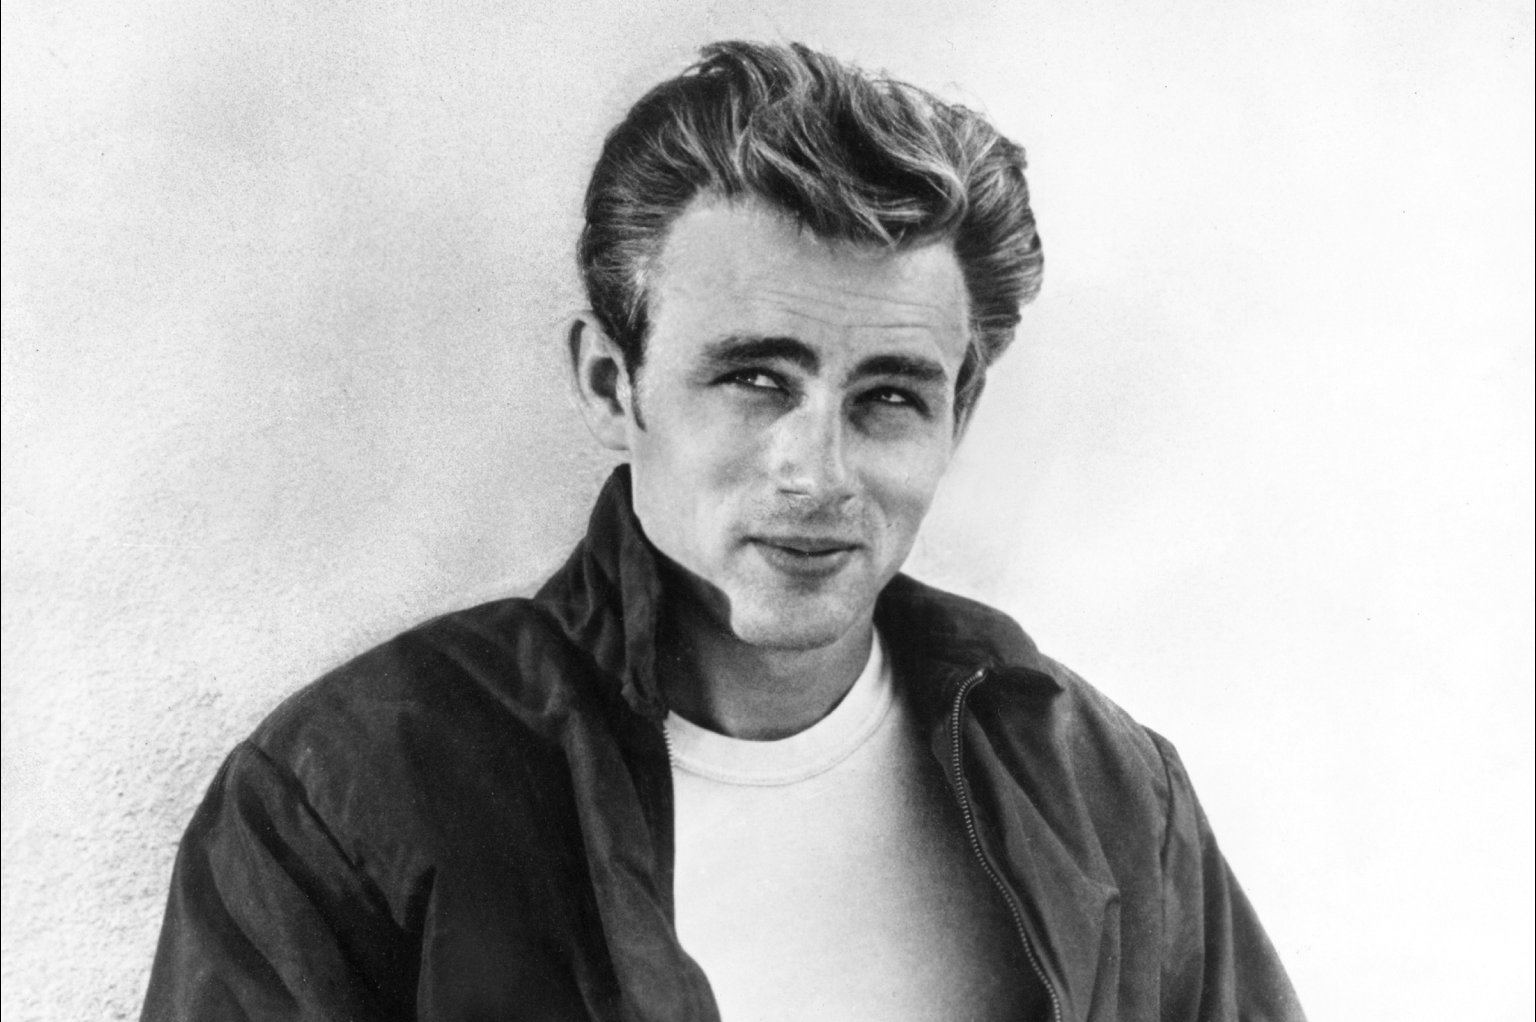 10 Tips For Guys To Look As Cool As James Dean